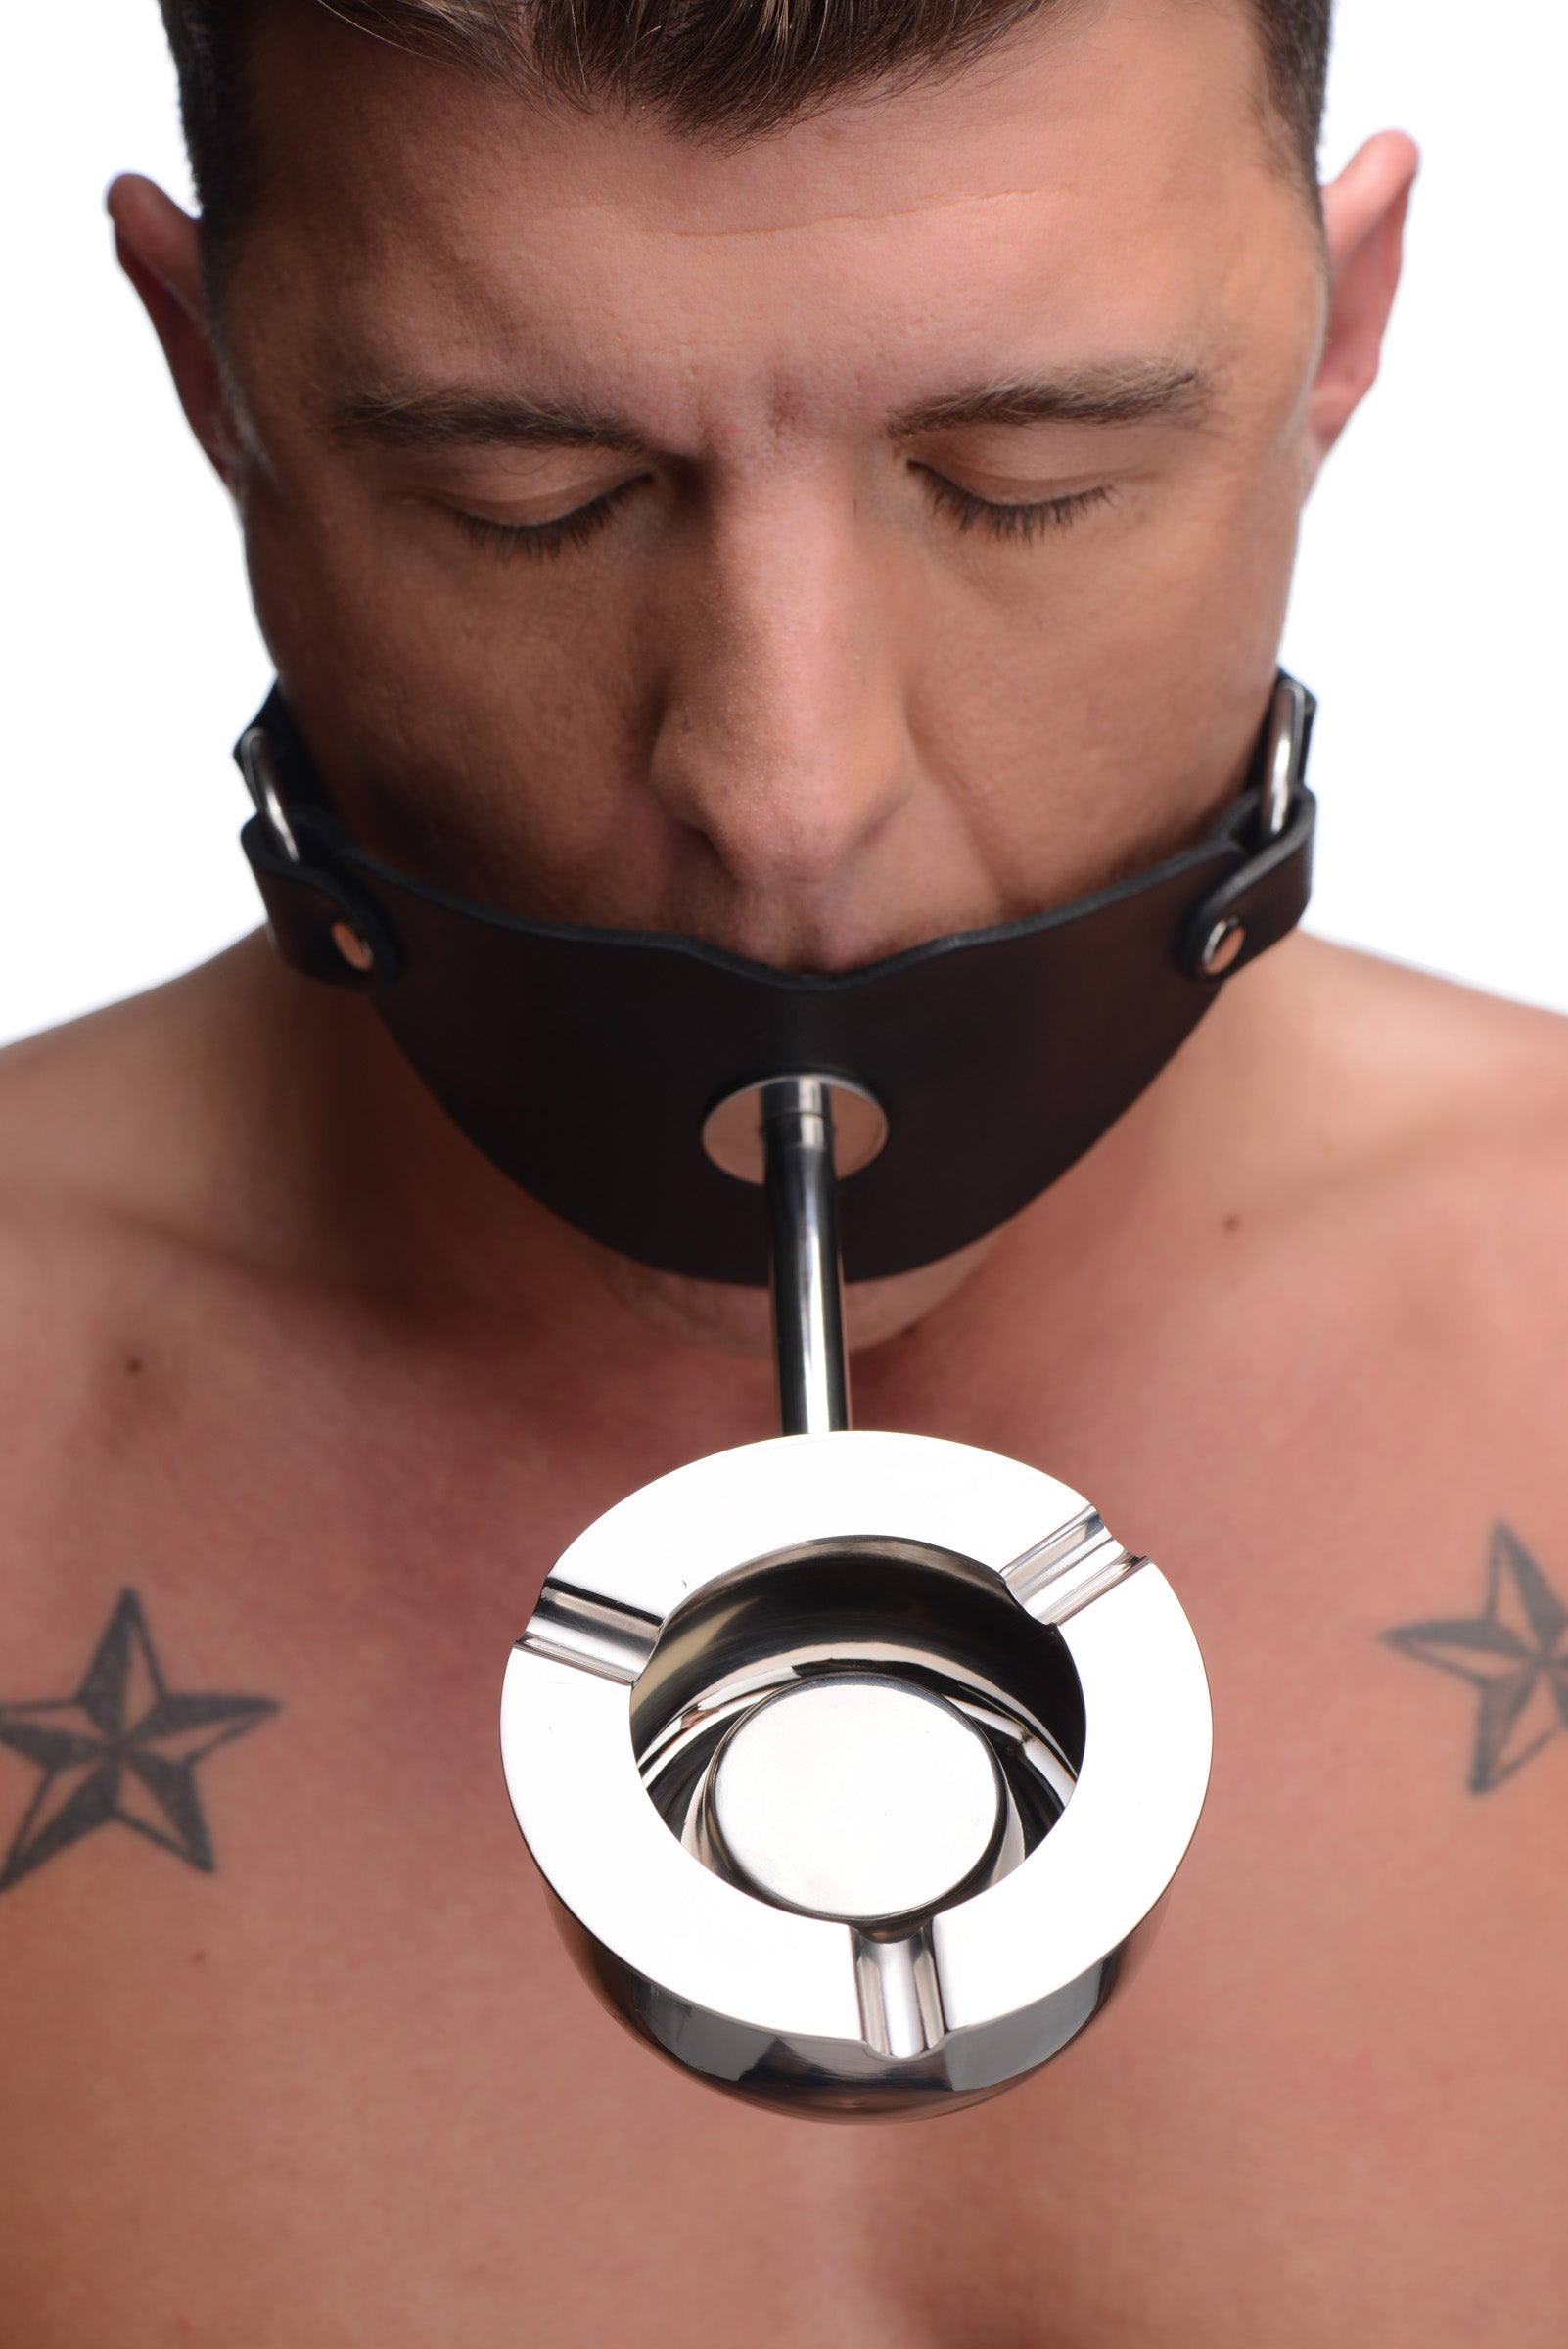 Ashtray Ball Gag